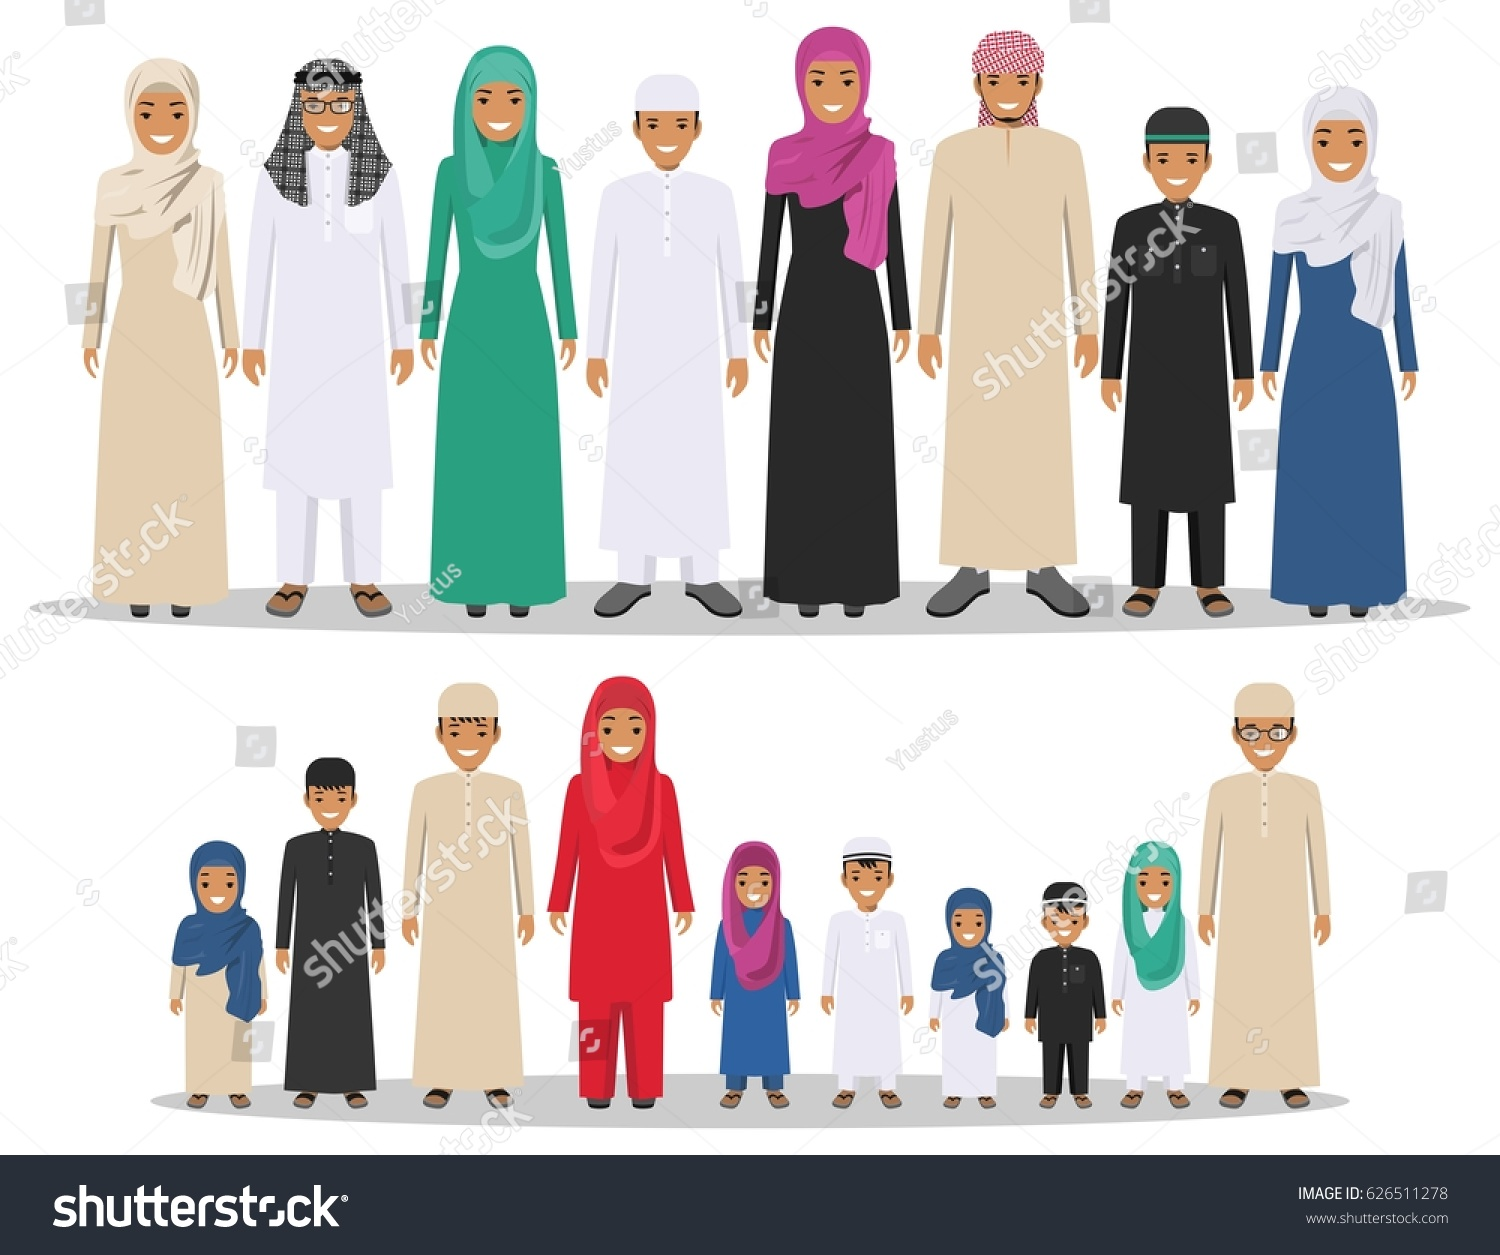 Family Social Concept Group Muslim Arabian Stock Vector ...